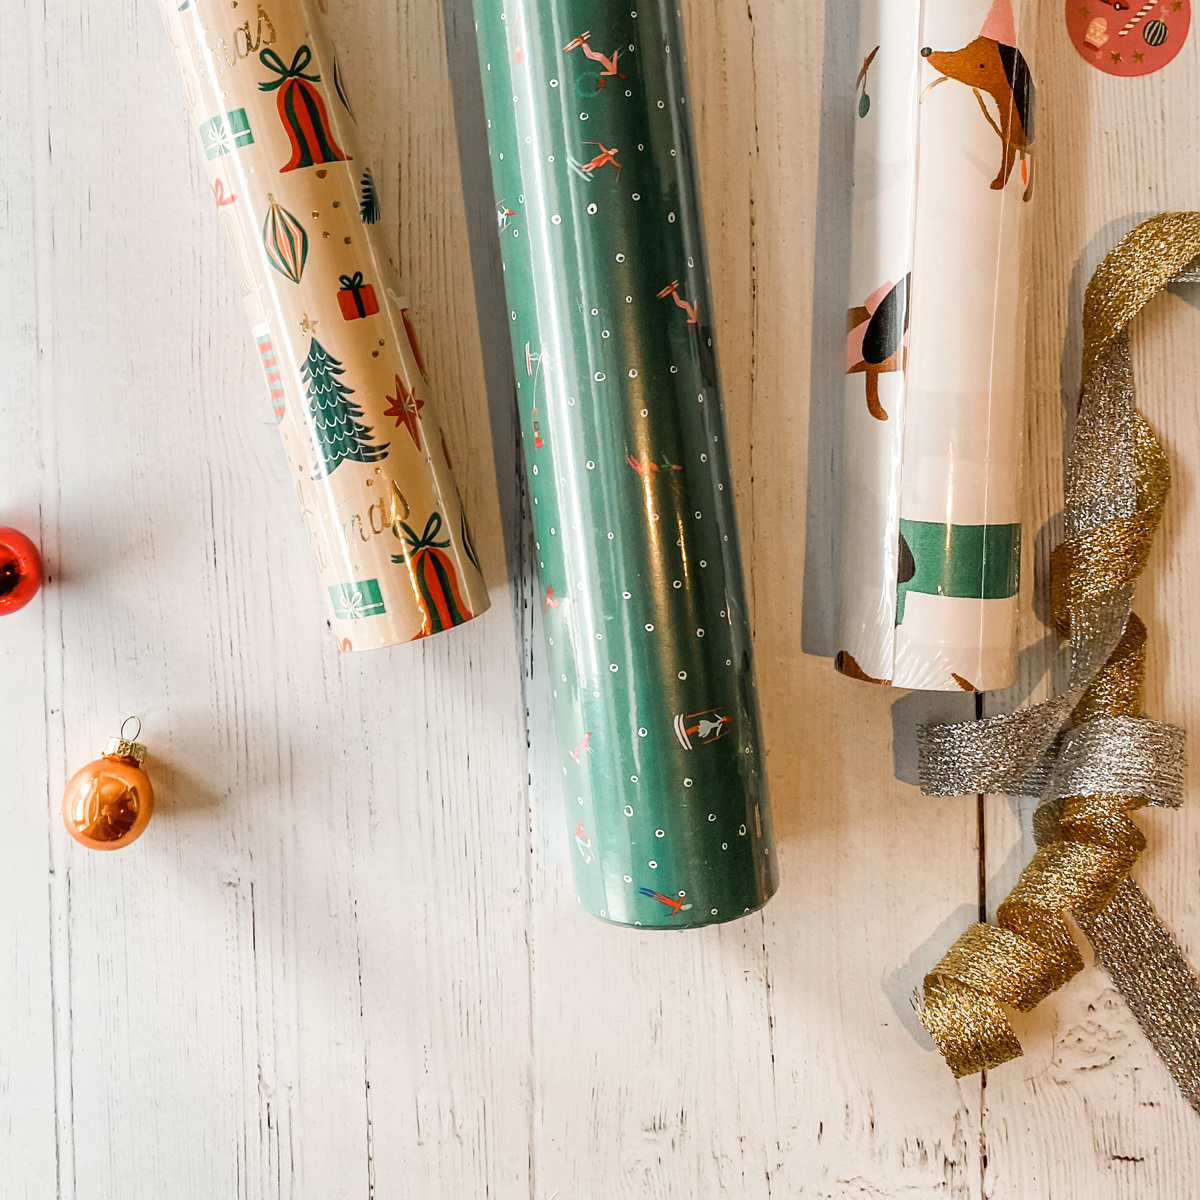 Gus and Ruby Letterpress - GR Deck the Halls Set of 3 Wrapping Paper Rolls